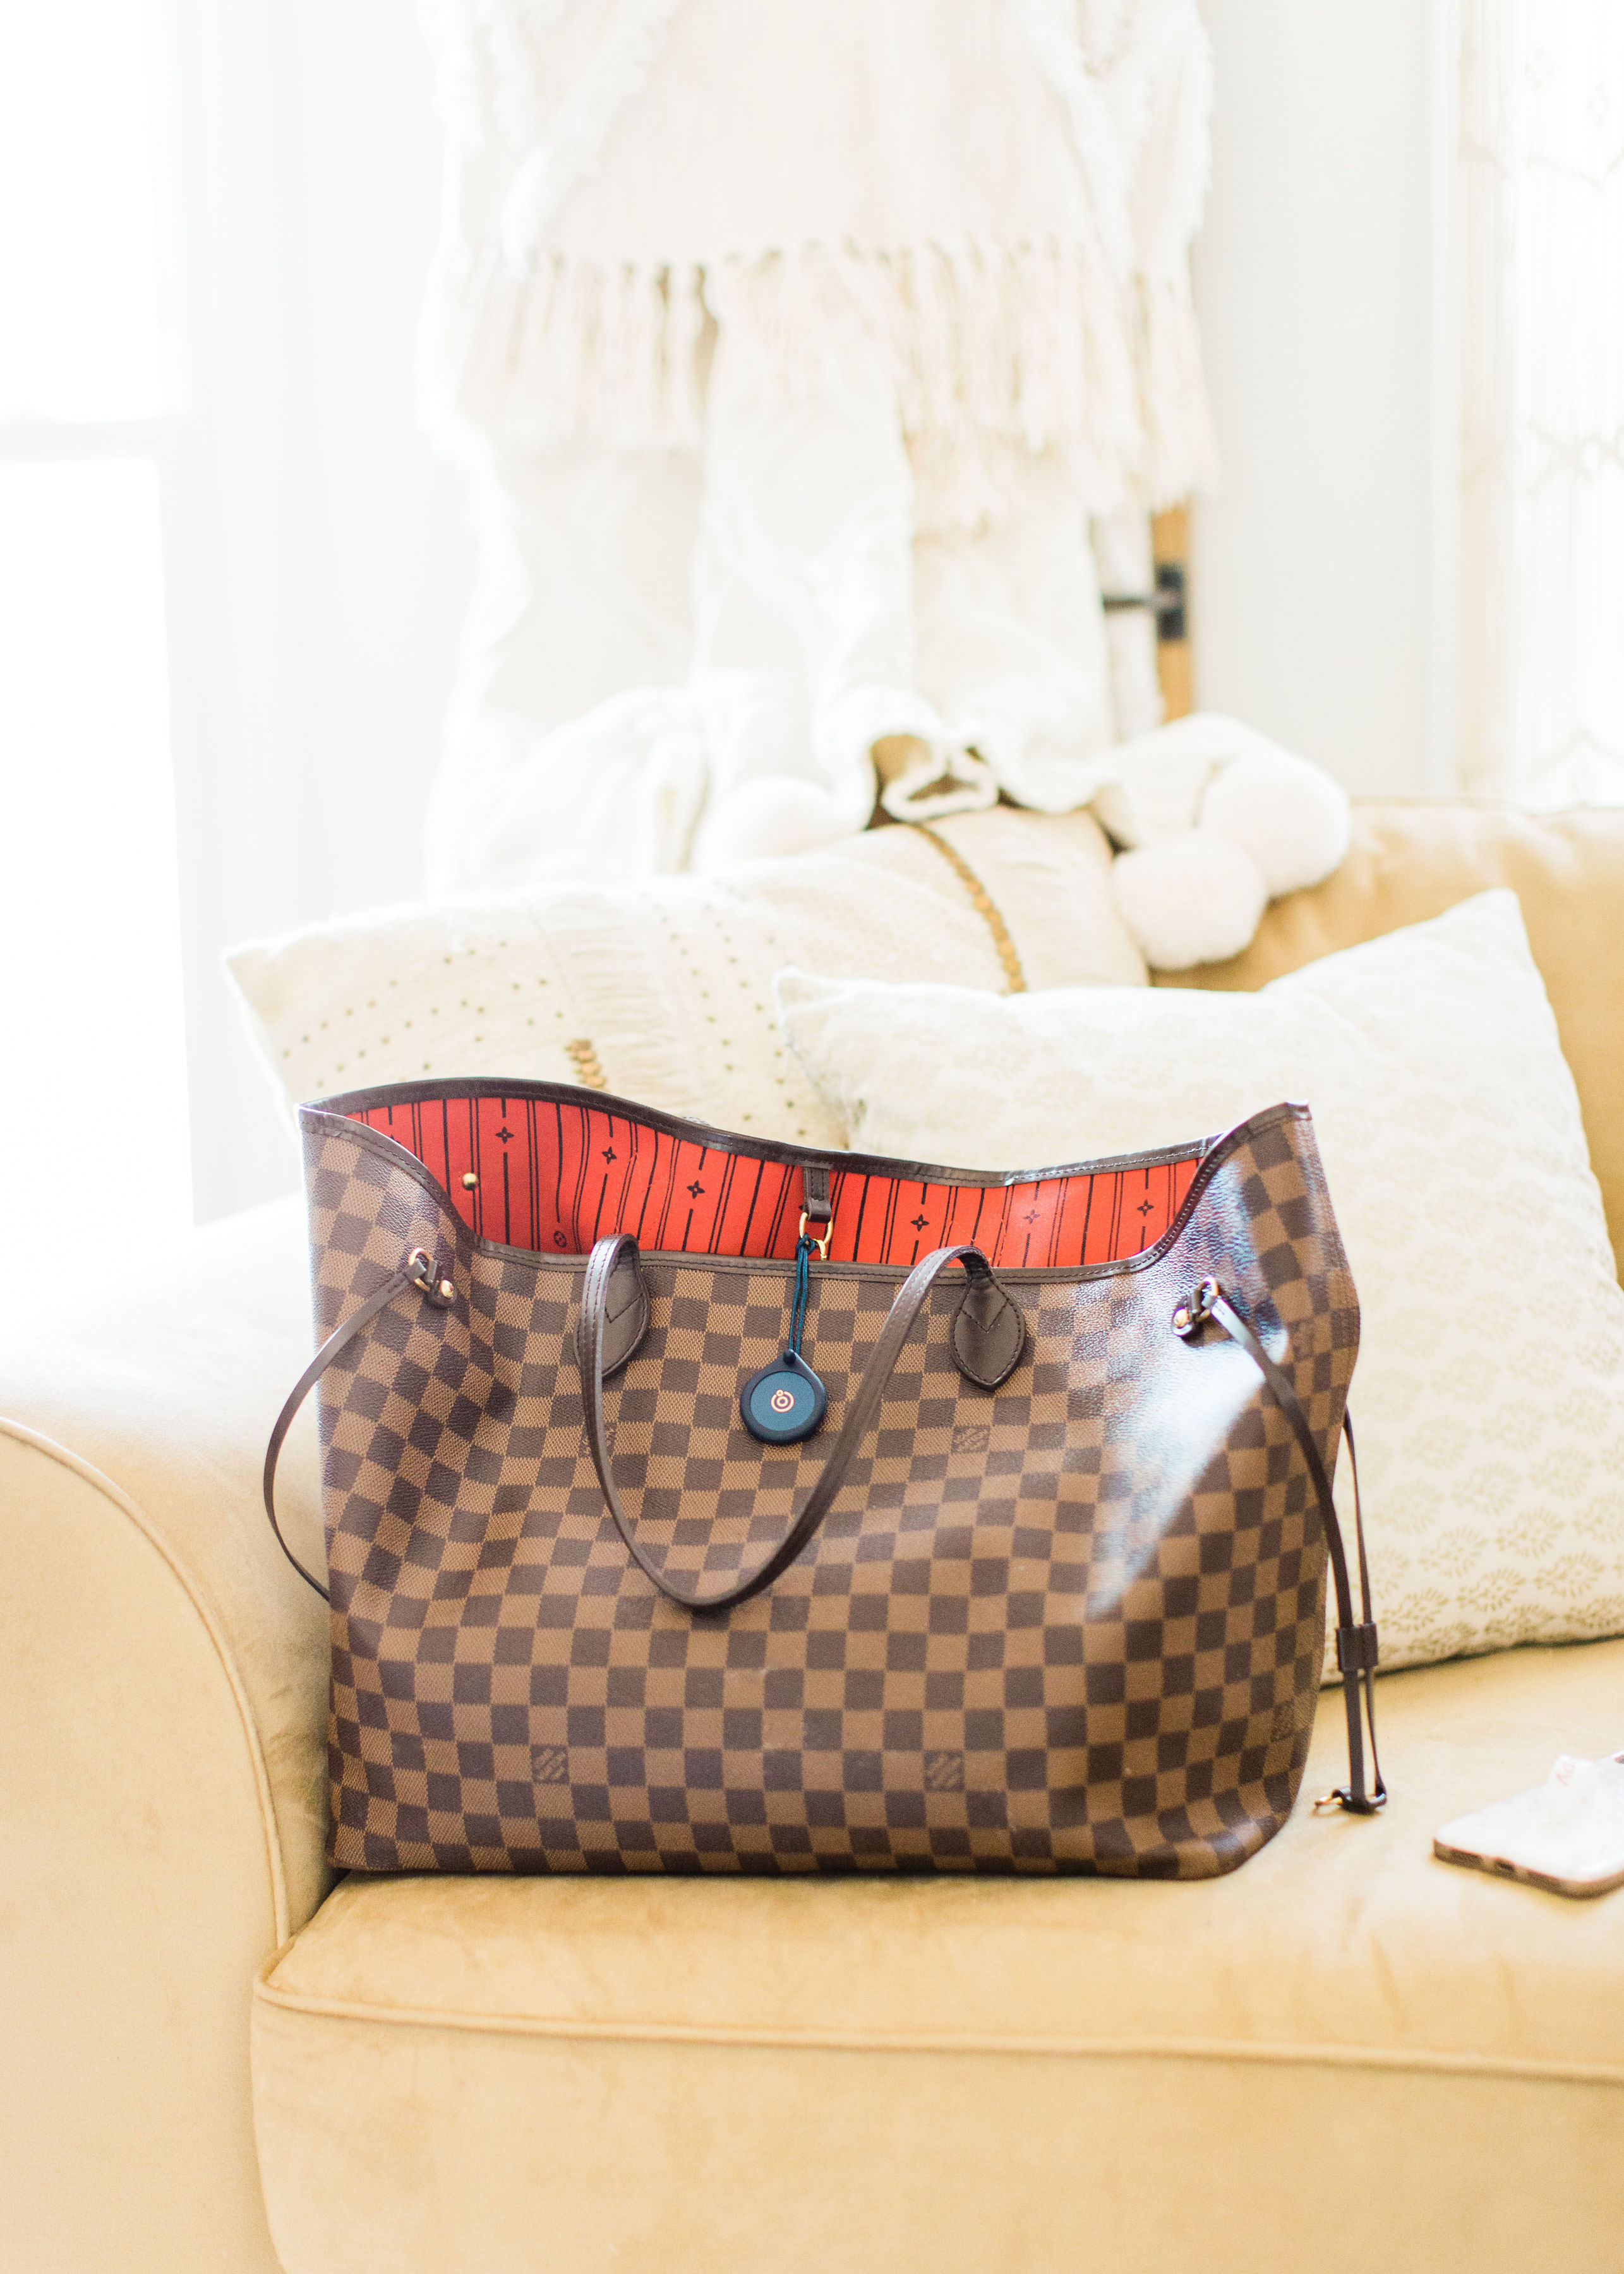 8 tips for avoiding the morning chaos, including actionable ways to stay on time, keep organized, and find a little bit of morning calm, including my new favorite mom hack - Adero - that now has a permanent spot in my diaper bag. | glitterinc.com | @glitterinc